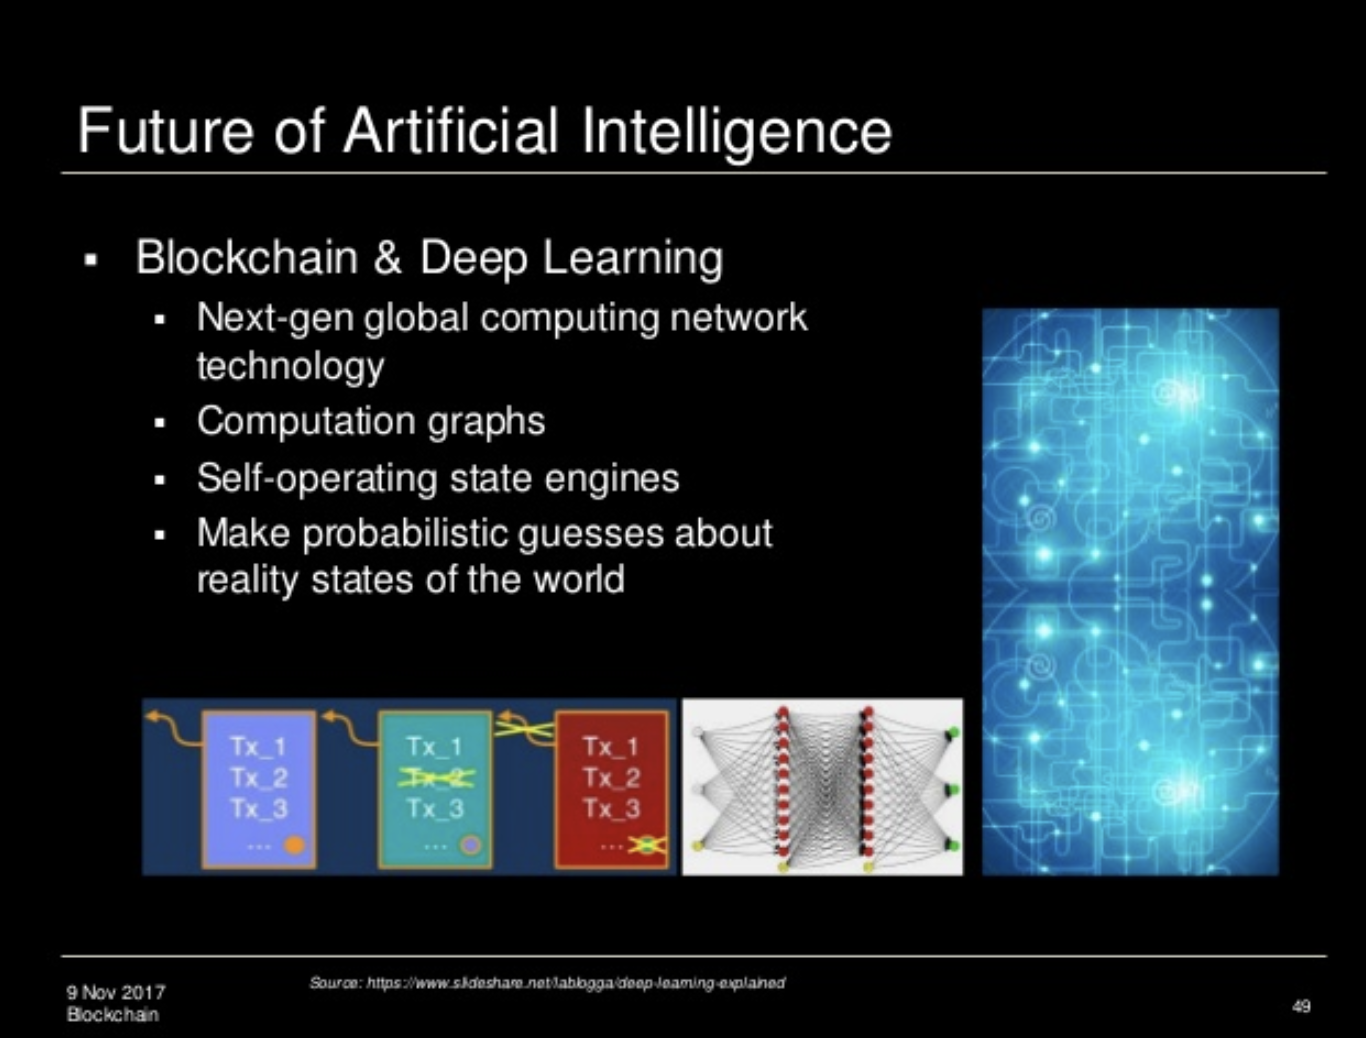 The future of artificial intelligence slide by Melanie Swan